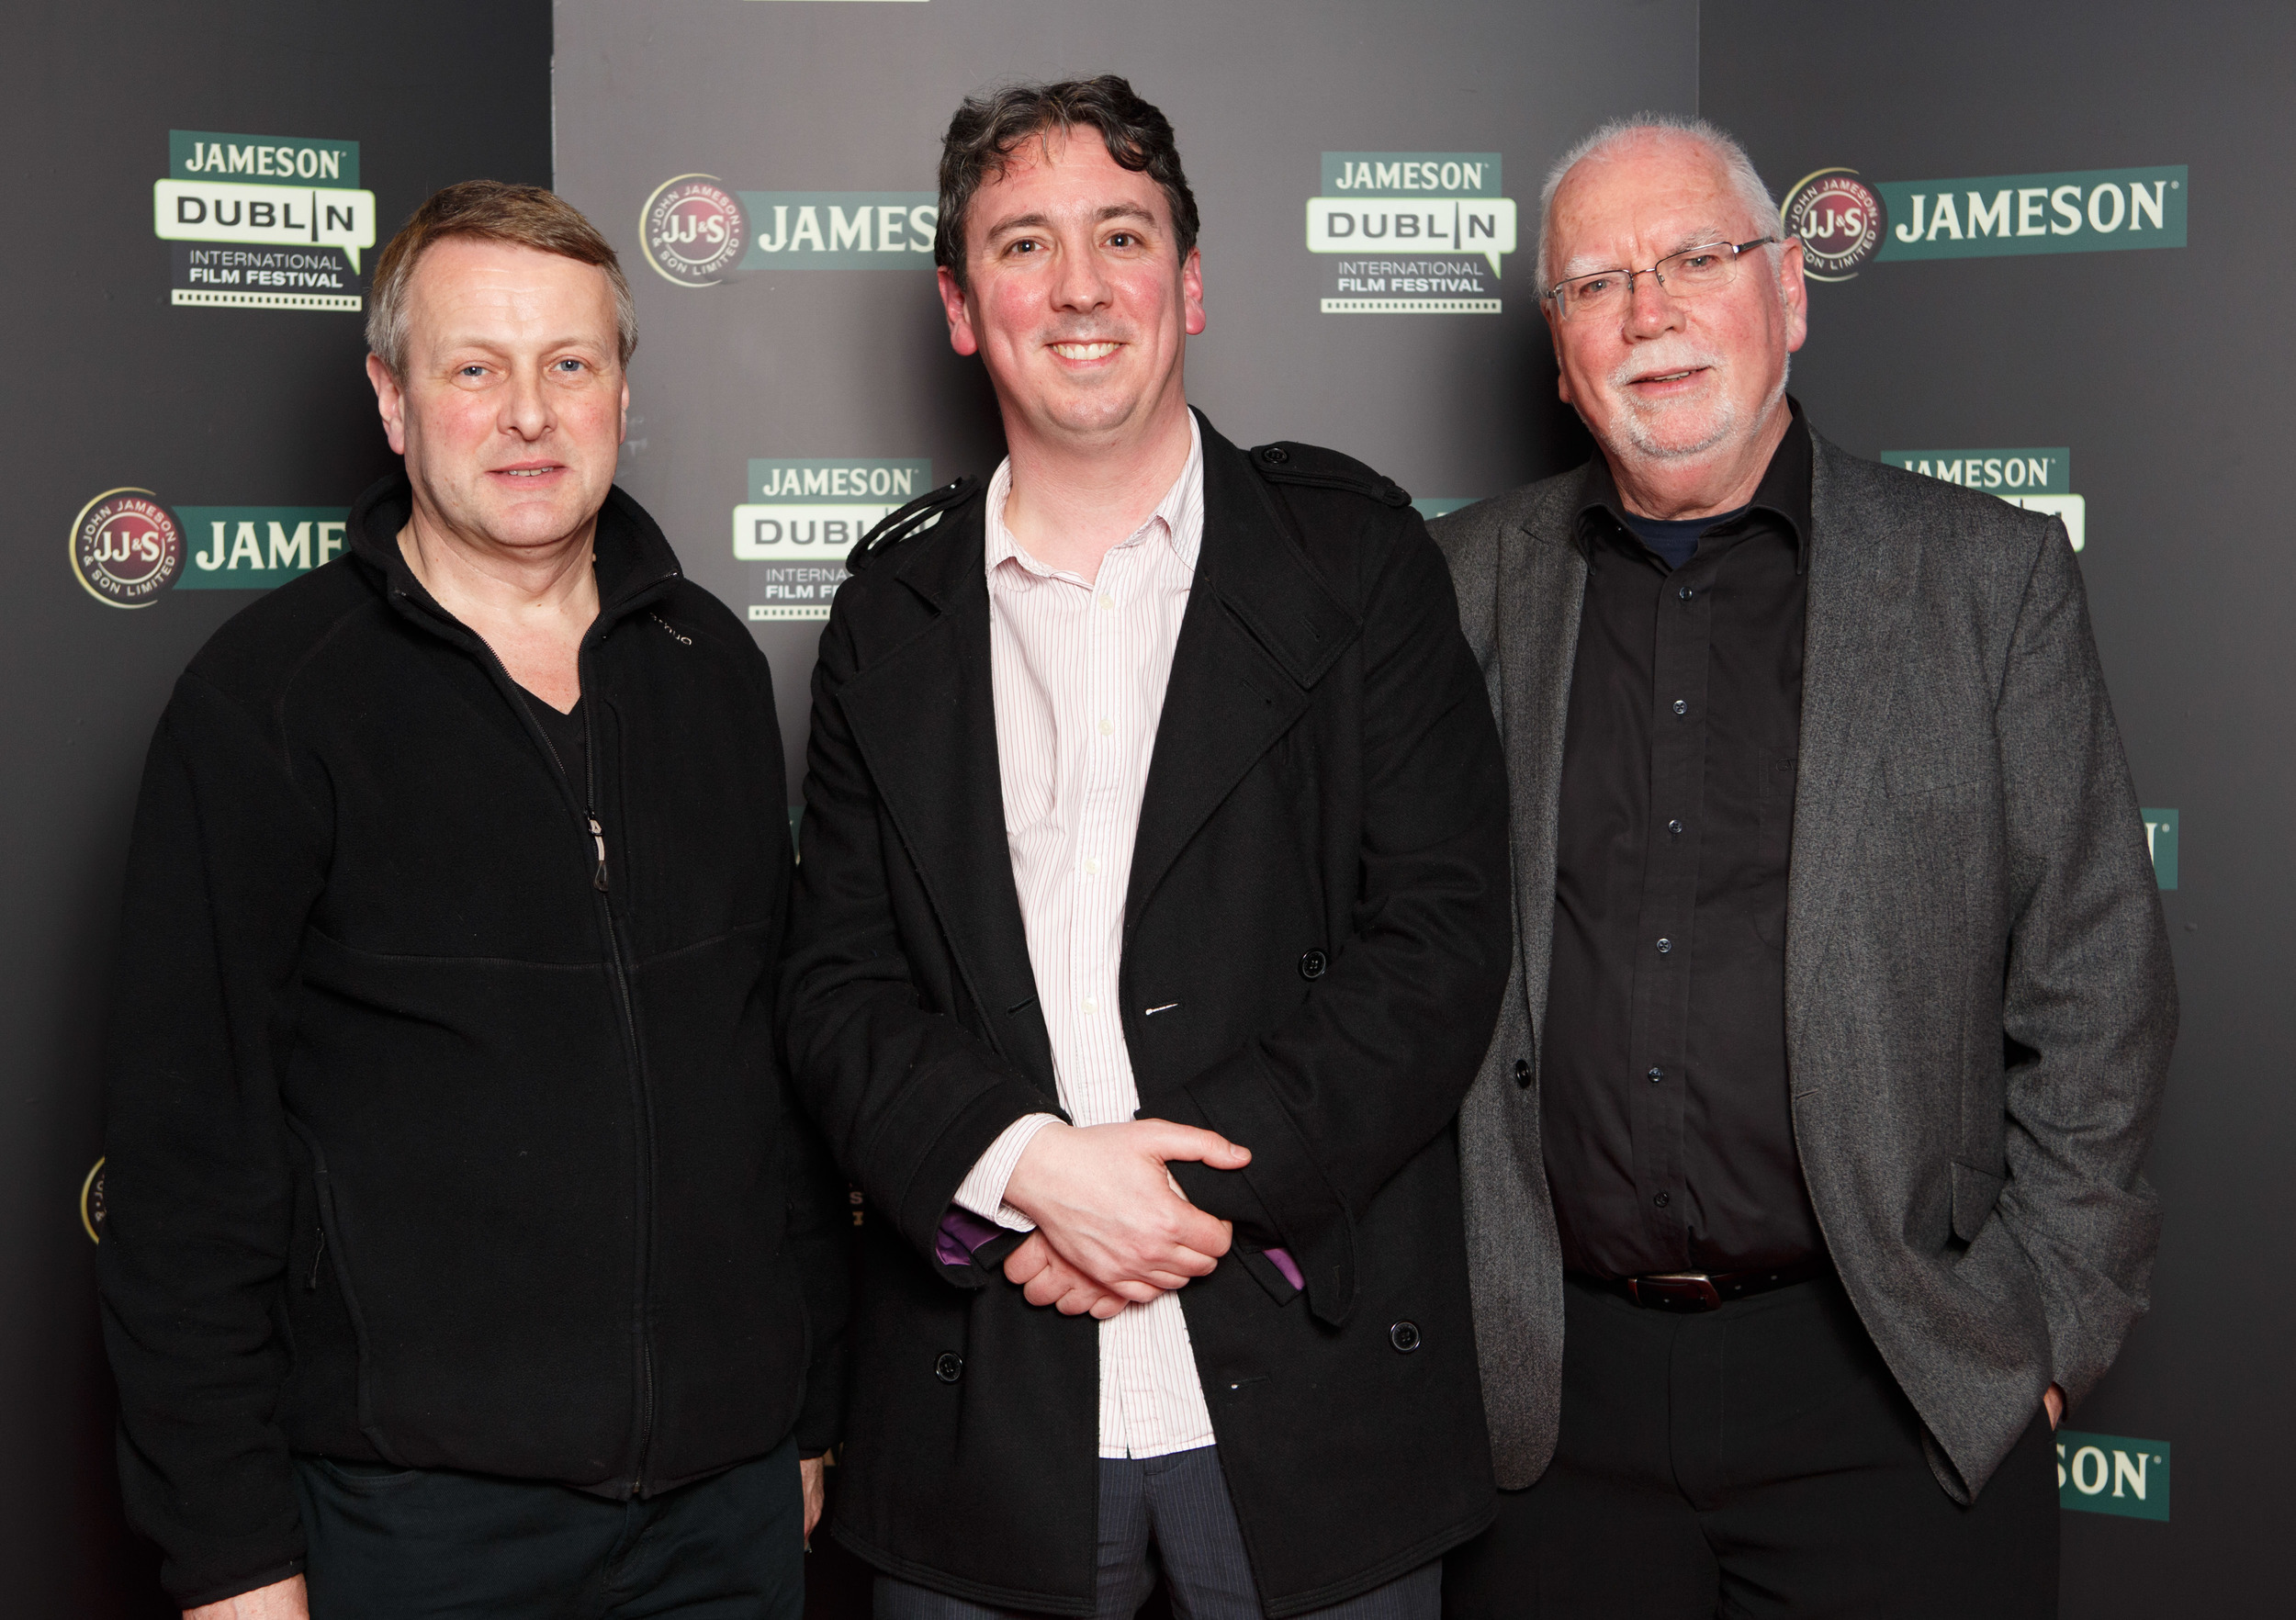 Executive Producer Stephen Rooke, Director Keith Farrell and Producer Dave Farrell